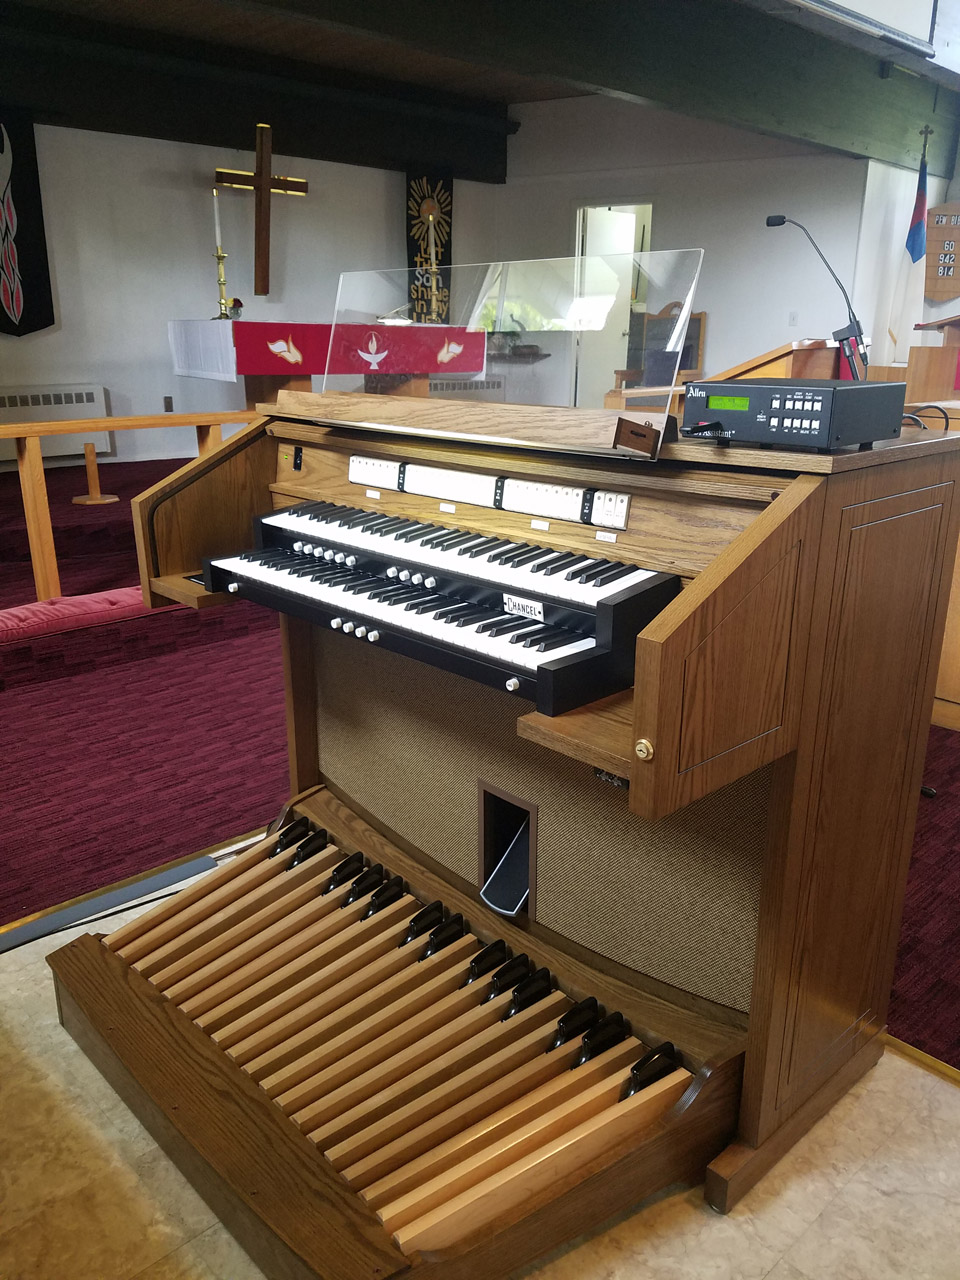 Allen CF-3 digital organ, Trinity Lutheran Church, Monroeville PA